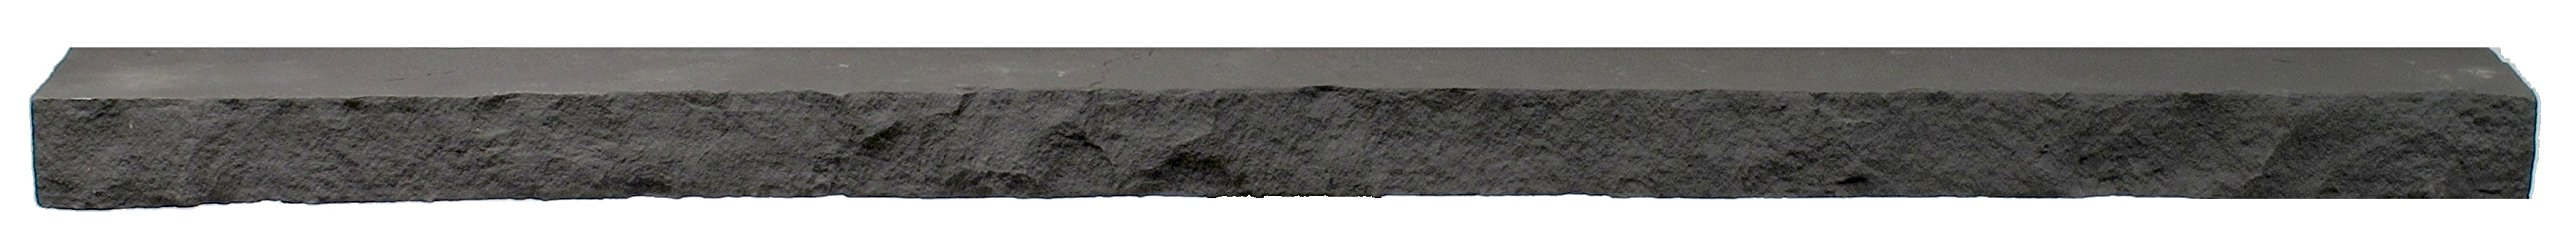 NextStone Sandstone 4 Foot Ledger Charcoal 4 Pack